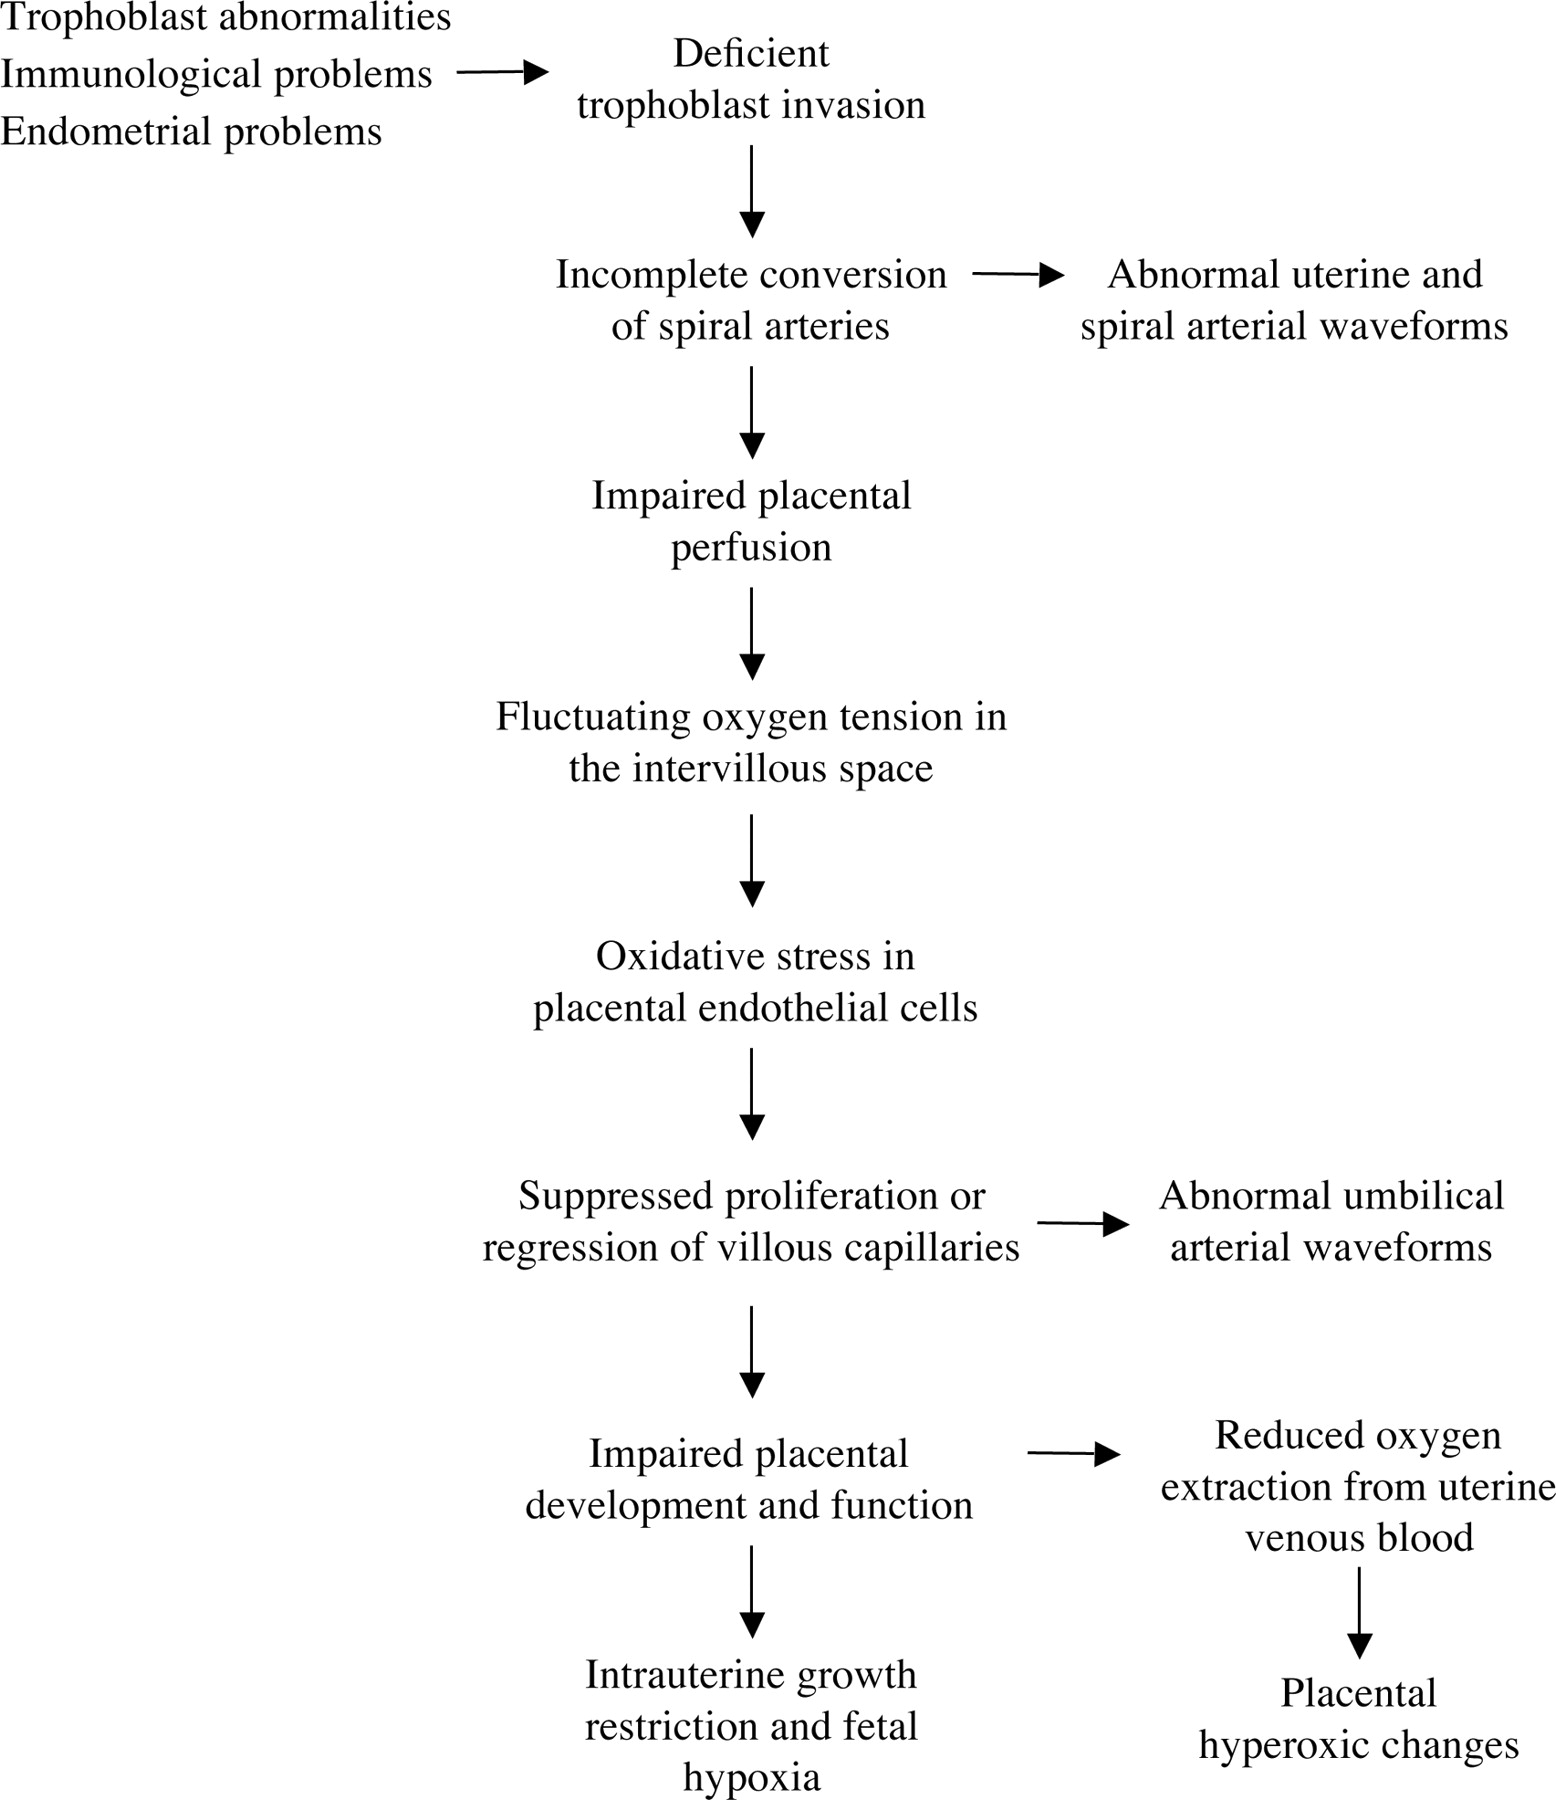 hight resolution of flow diagram indicating how oxidative stress induced through deficient conversion of the spiral arteries may lead through impaired placental angiogenesis to